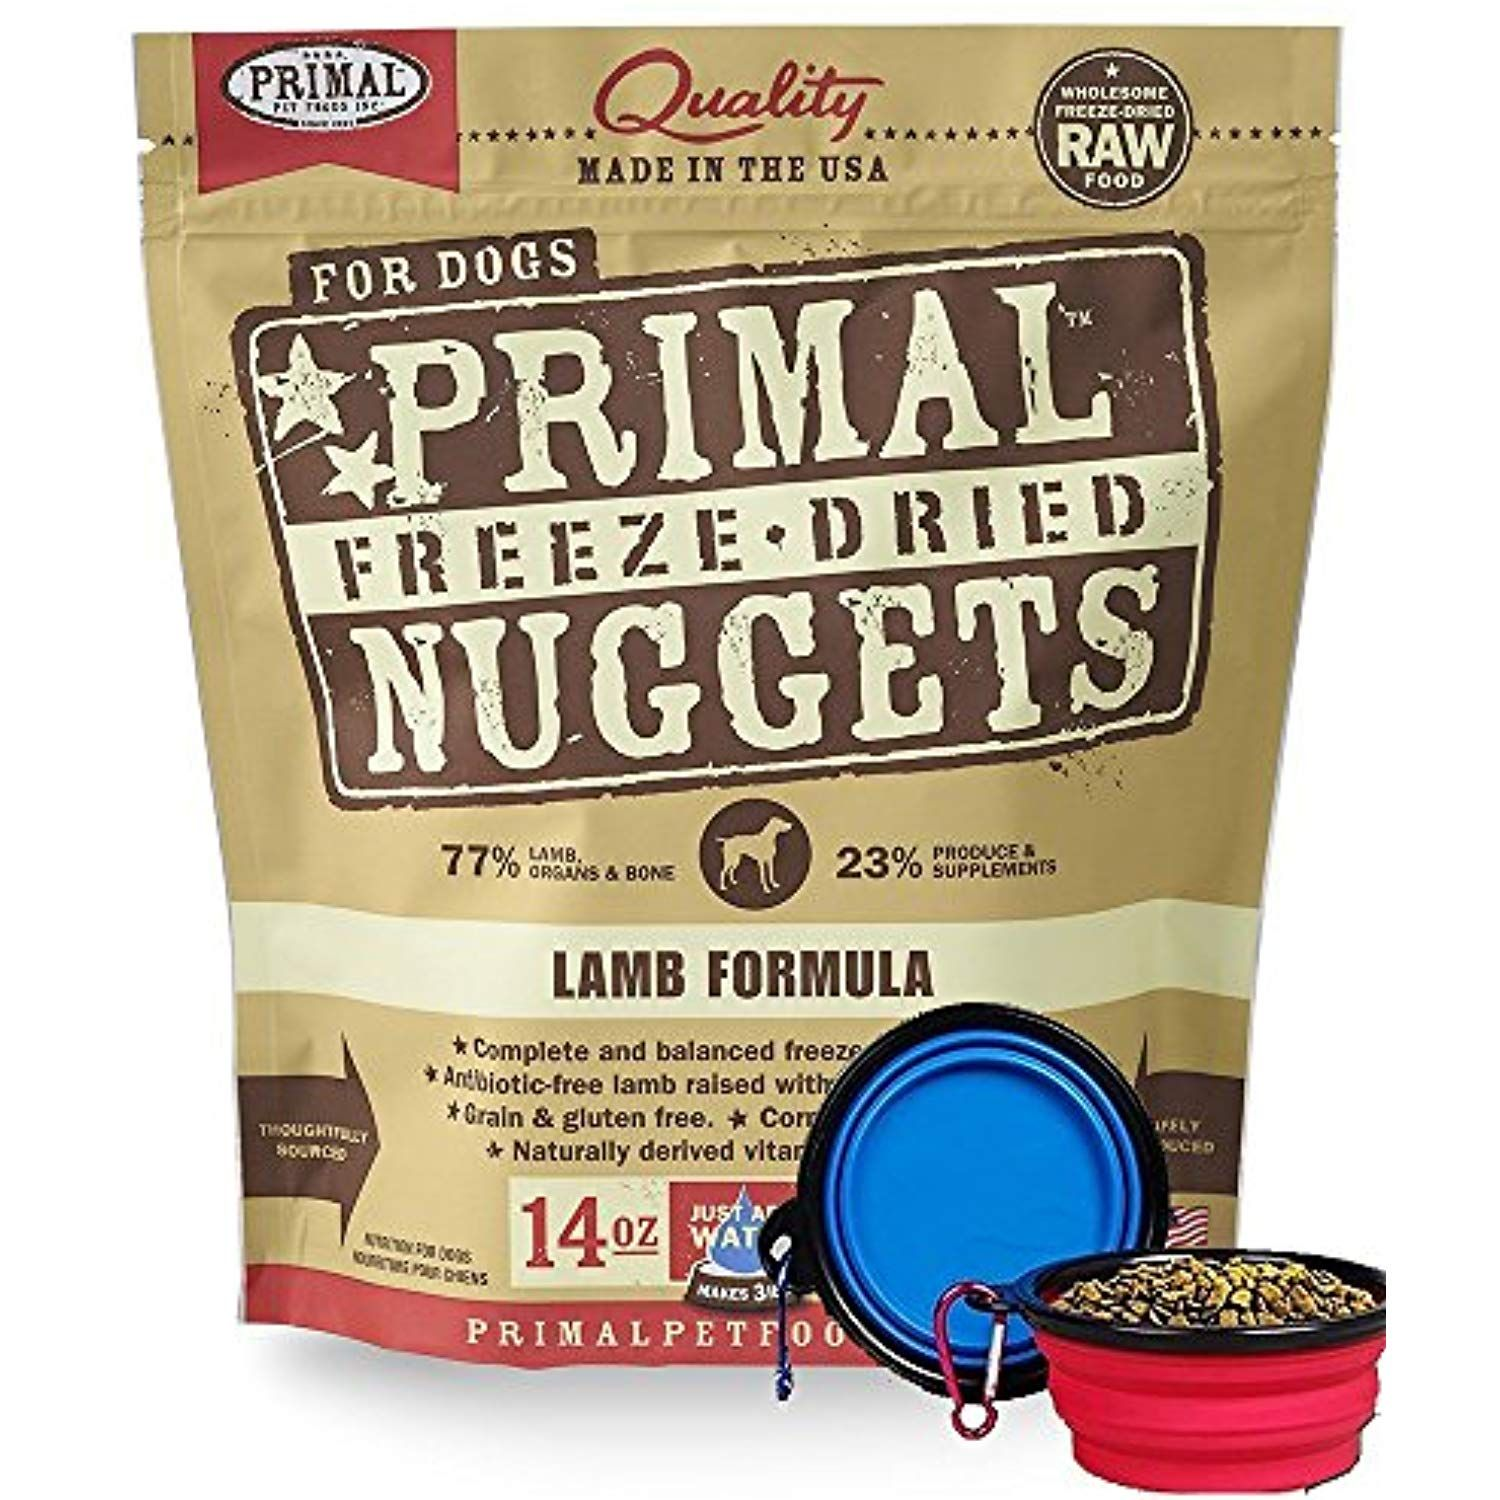 Primal Pet Food Freeze Dried Dog Food 14ounce Bag